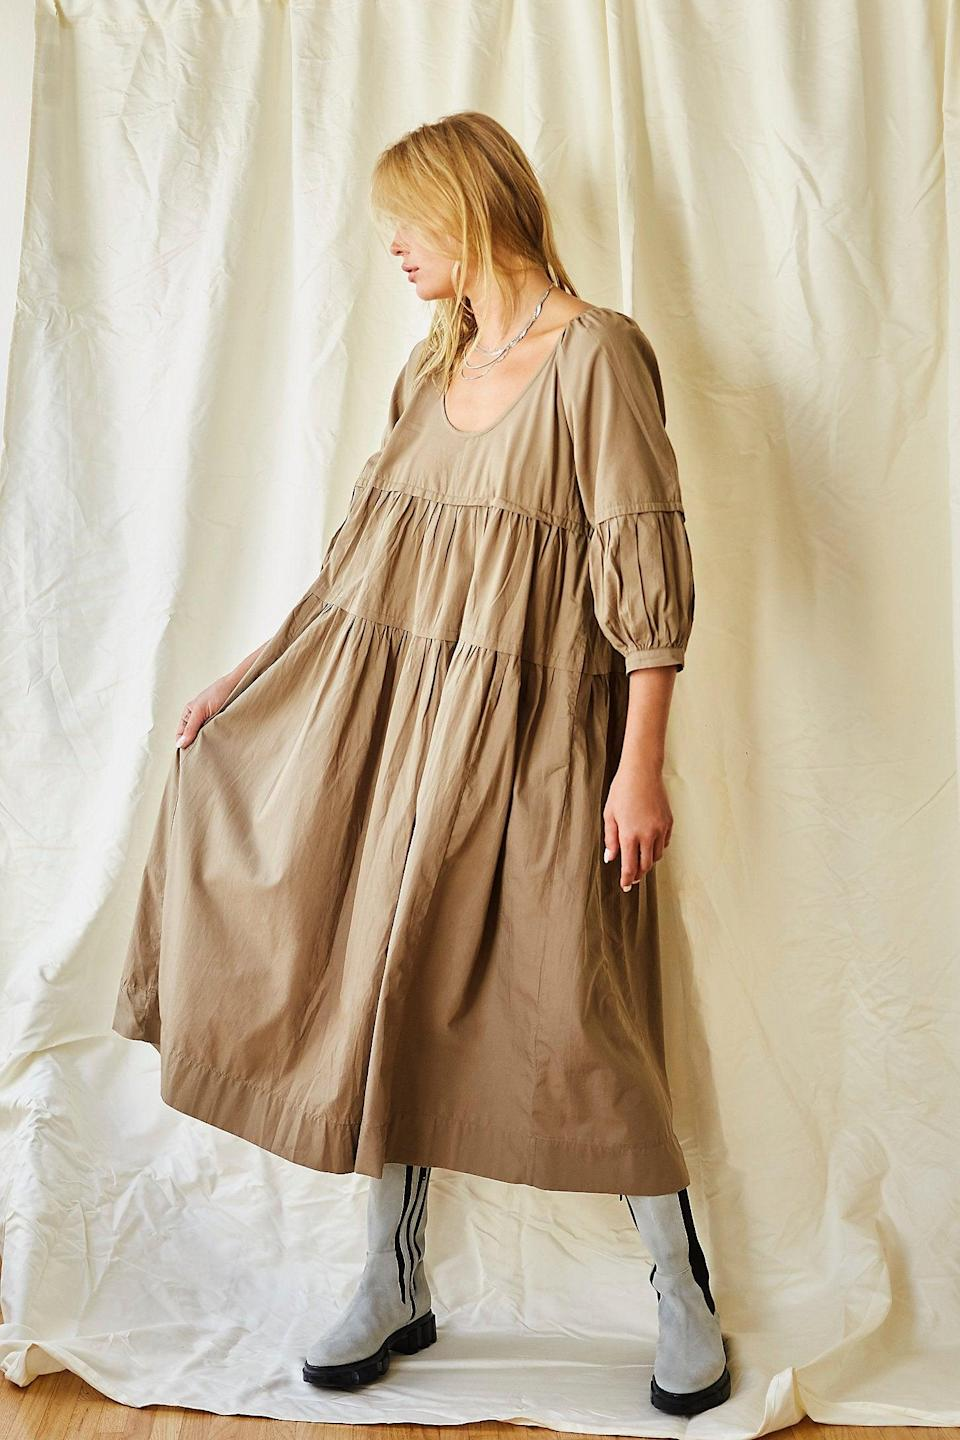 """<h2>Free People Syd Poplin Midi Dress</h2><br>Do your tastes tend towards the loose, the layered, and the ... dare we say ... <em>boho</em>? Legions of love children flock to Free People for exactly that, and the retailer is replete with under-$100 frocks that flow, waft, and billow. Our fall pick — a tented poplin number with accommodating sleeves — is no exception.<br><br><strong>Endless Summer</strong> Syd Poplin Midi Dress, $, available at <a href=""""https://go.skimresources.com/?id=30283X879131&url=https%3A%2F%2Fwww.freepeople.com%2Fshop%2Fsyd-poplin-midi-dress%2F%3Fcategory%3Ddresses%26color%3D030%26type%3DREGULAR%26quantity%3D1"""" rel=""""nofollow noopener"""" target=""""_blank"""" data-ylk=""""slk:Free People"""" class=""""link rapid-noclick-resp"""">Free People</a>"""